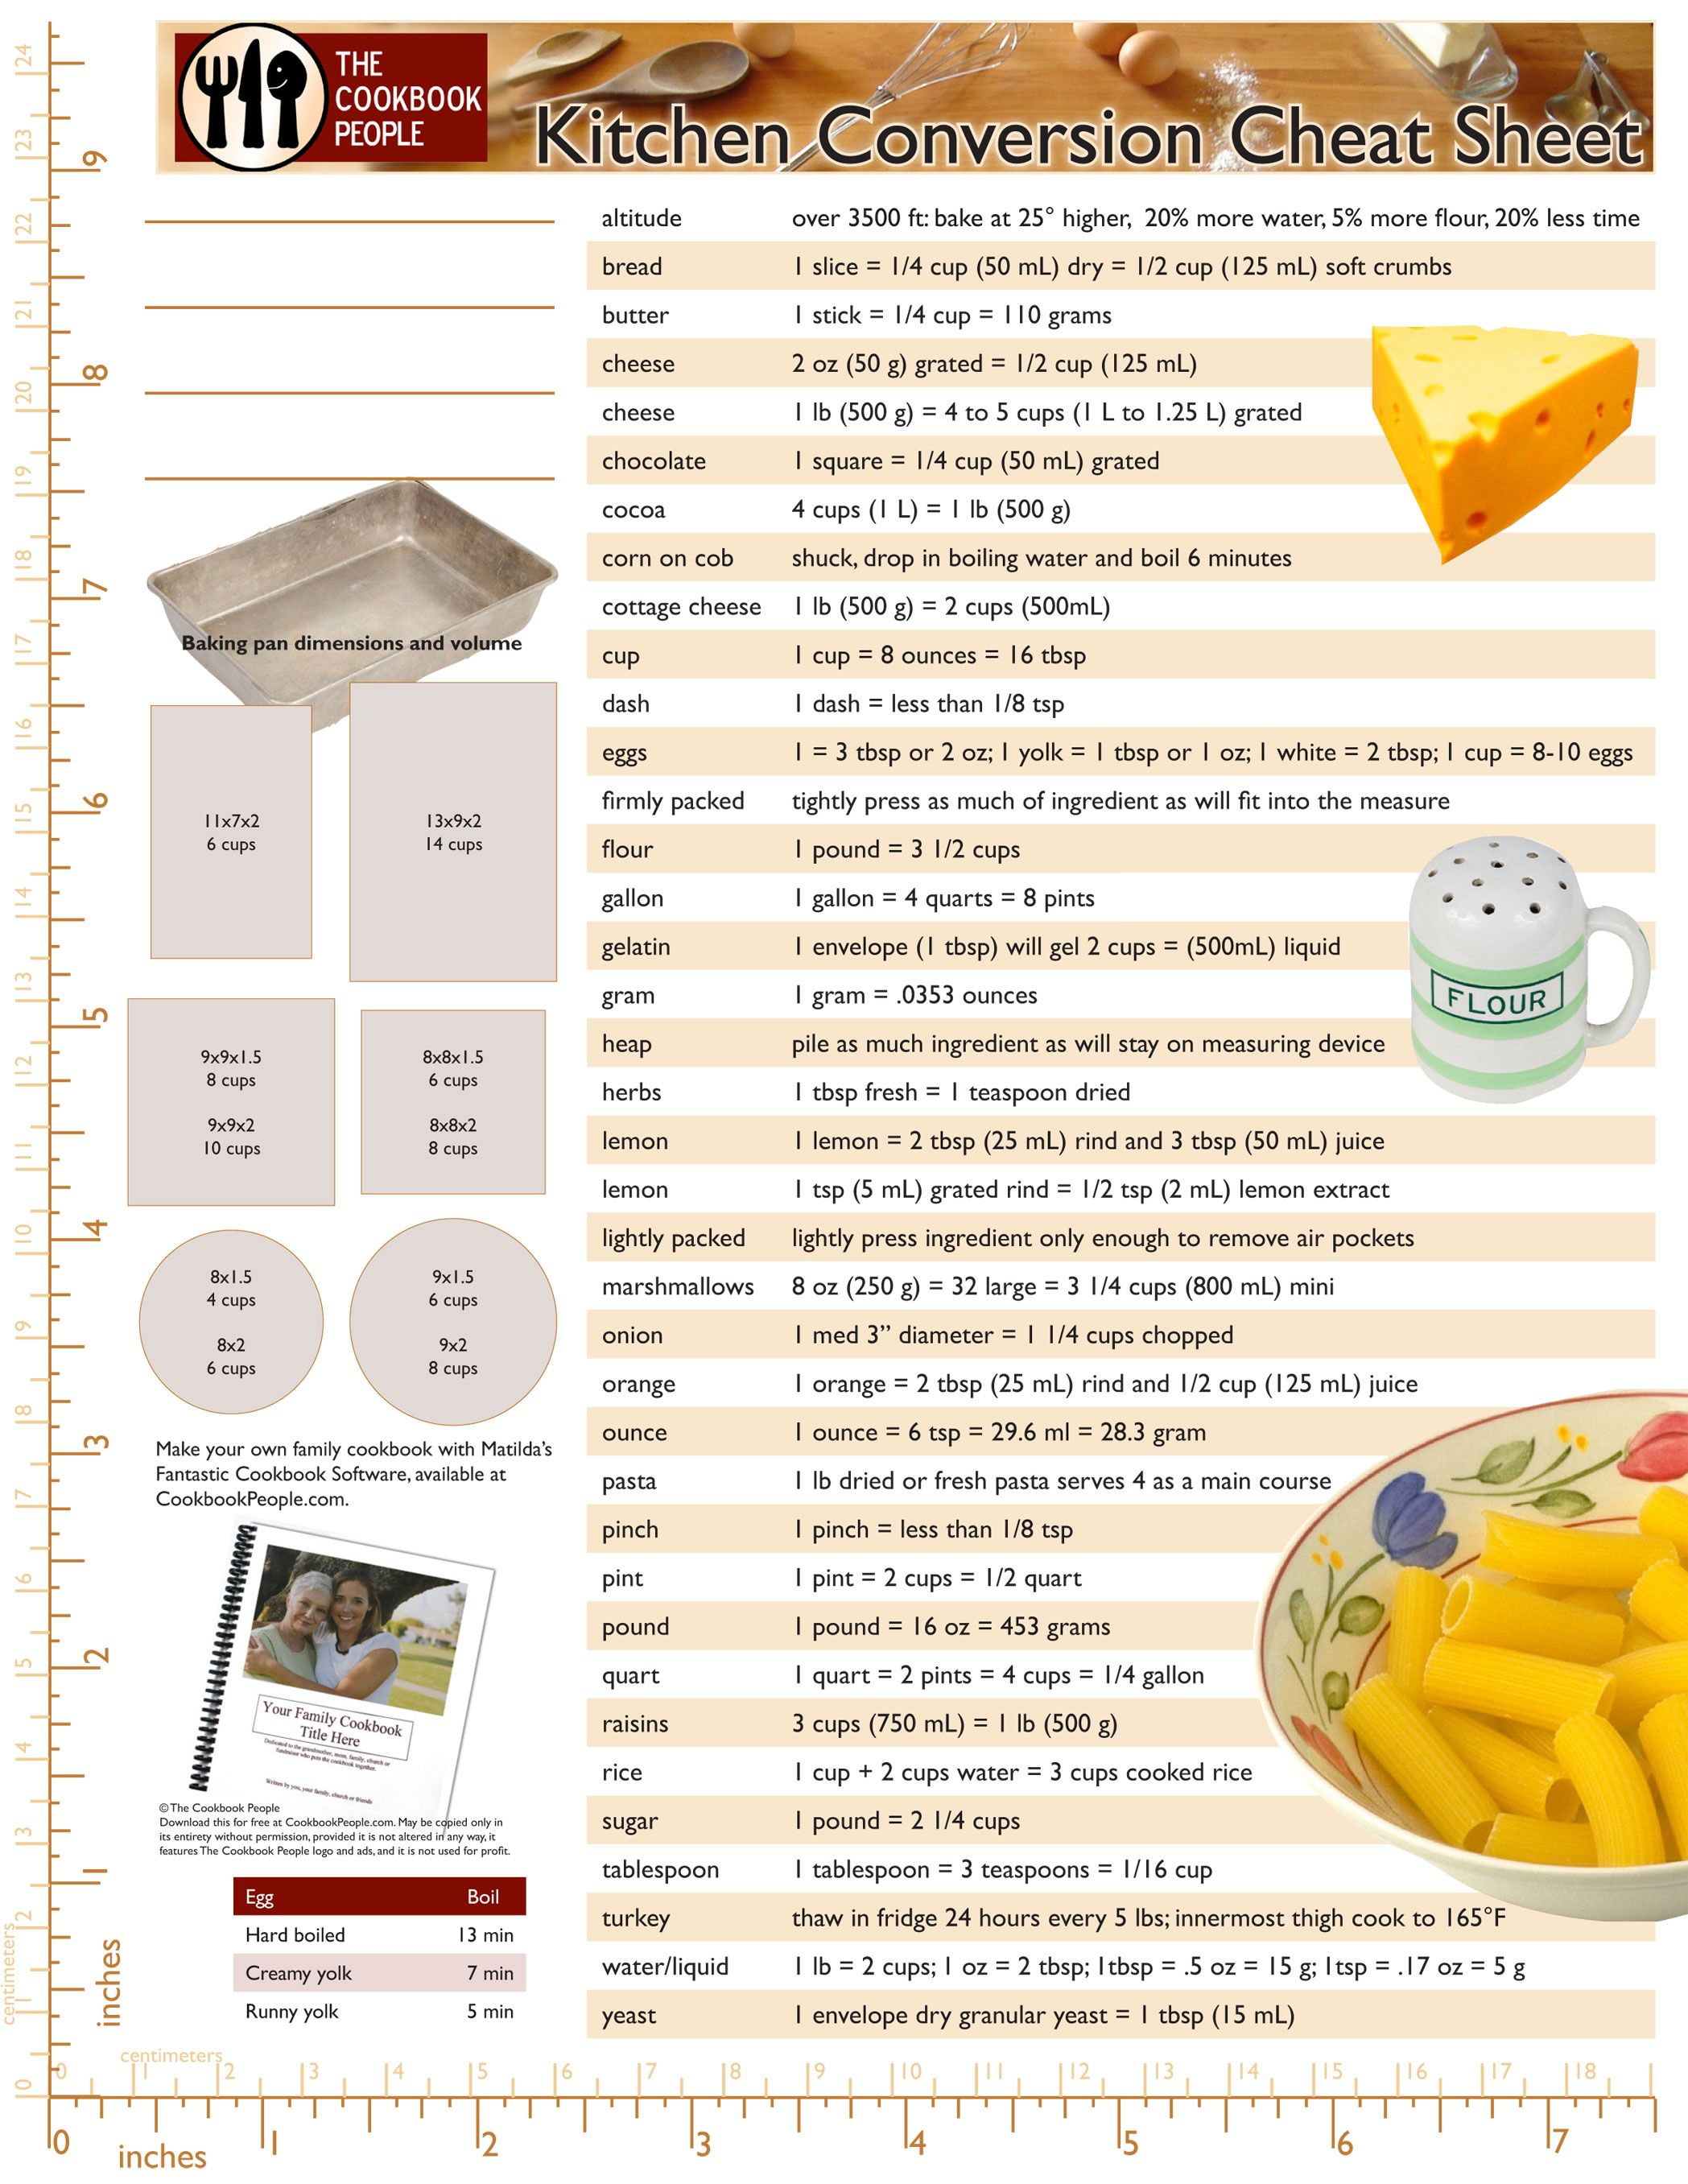 Cooking measurement conversion chart conversion chart page 1 cooking measurement conversion chart conversion chart page 1 nvjuhfo Gallery